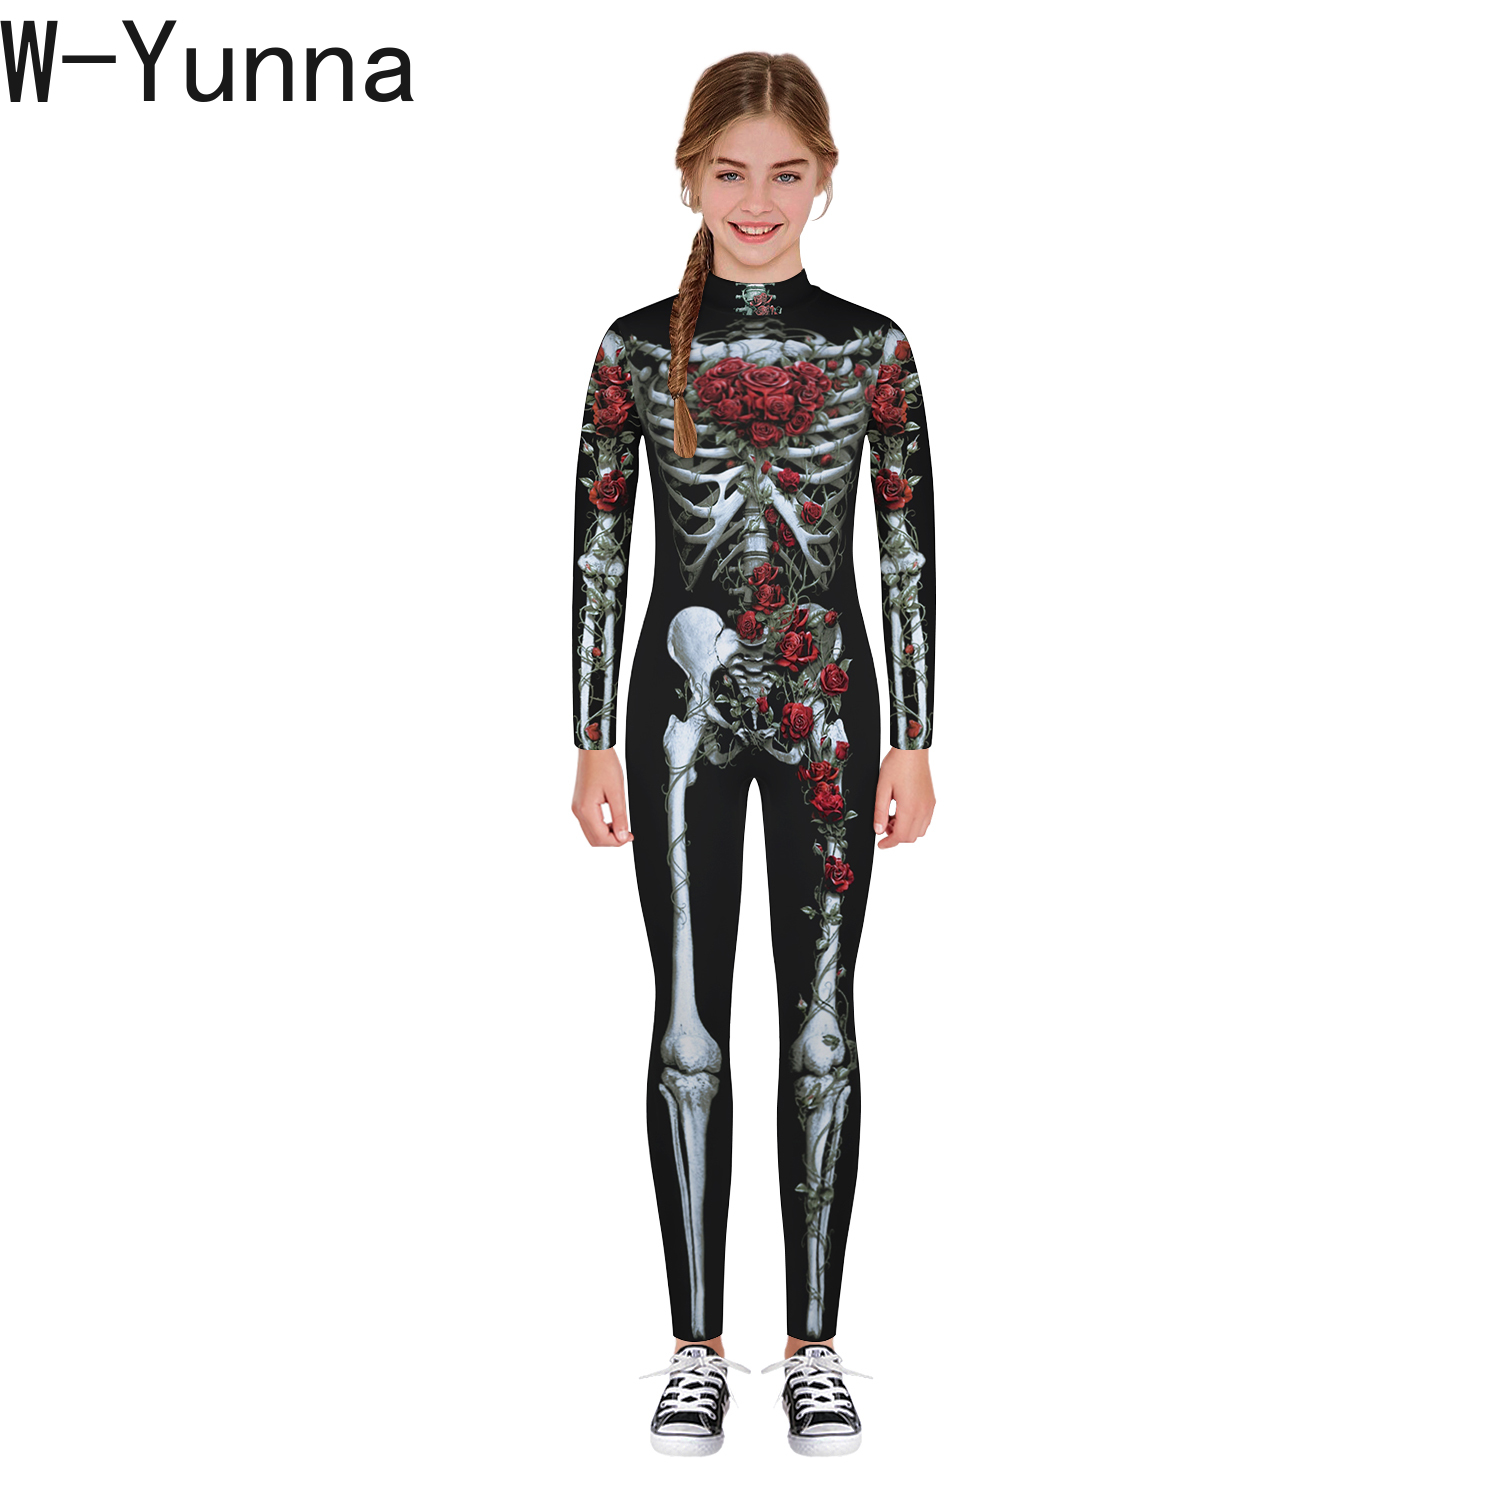 Image 2 - W Yunna 2019 Autumn Clothes Fashion Skeleton Blood Scary Costume Holloween 3d Print Full Sleeves Full Length Jumpsuits for Kids